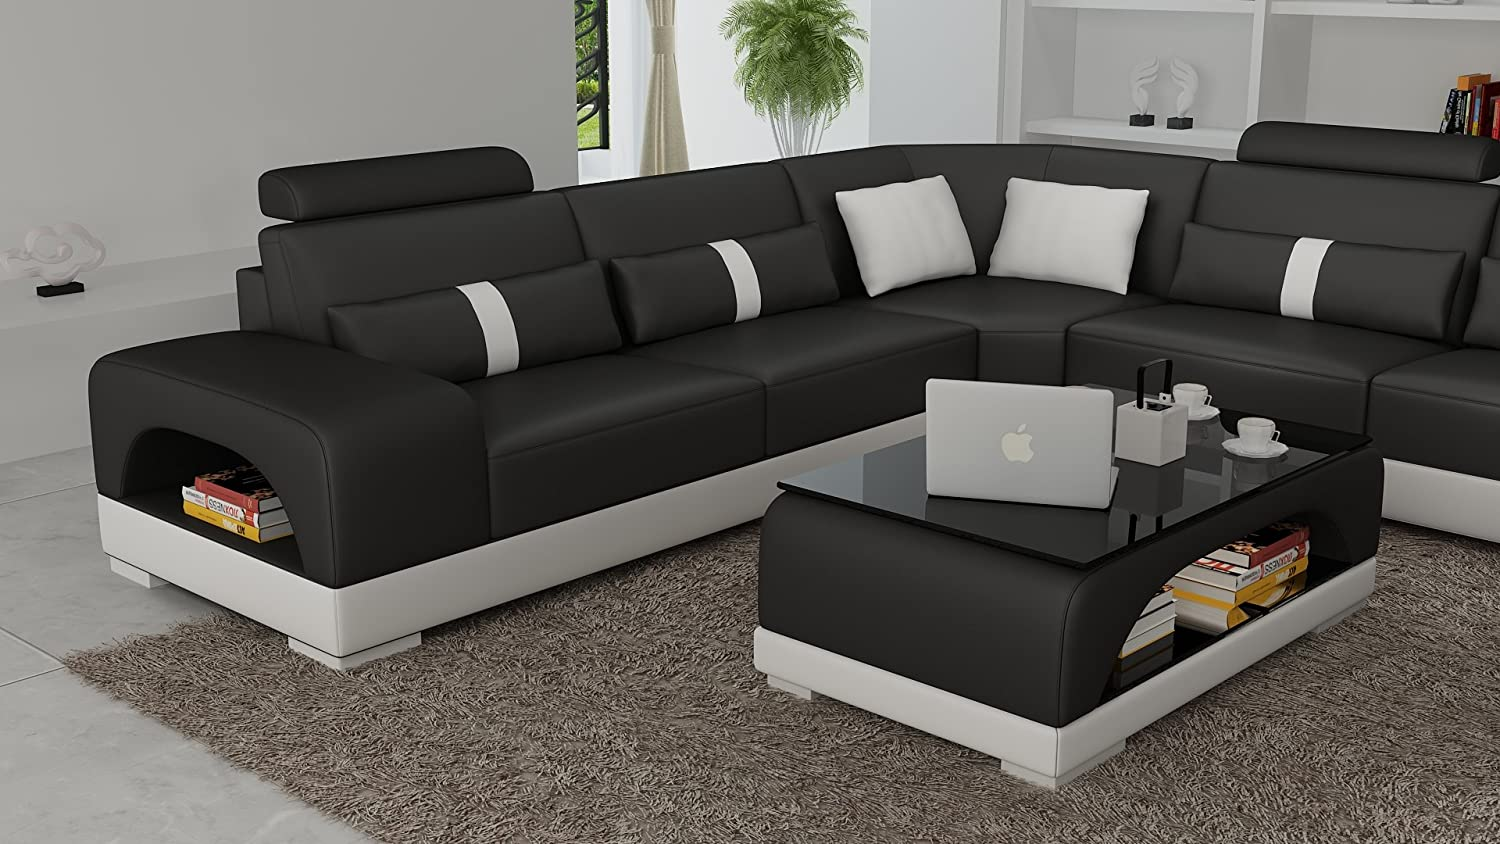 Marvelous Amazon Com Connie Sectional Sofa Set In Black White With Cjindustries Chair Design For Home Cjindustriesco